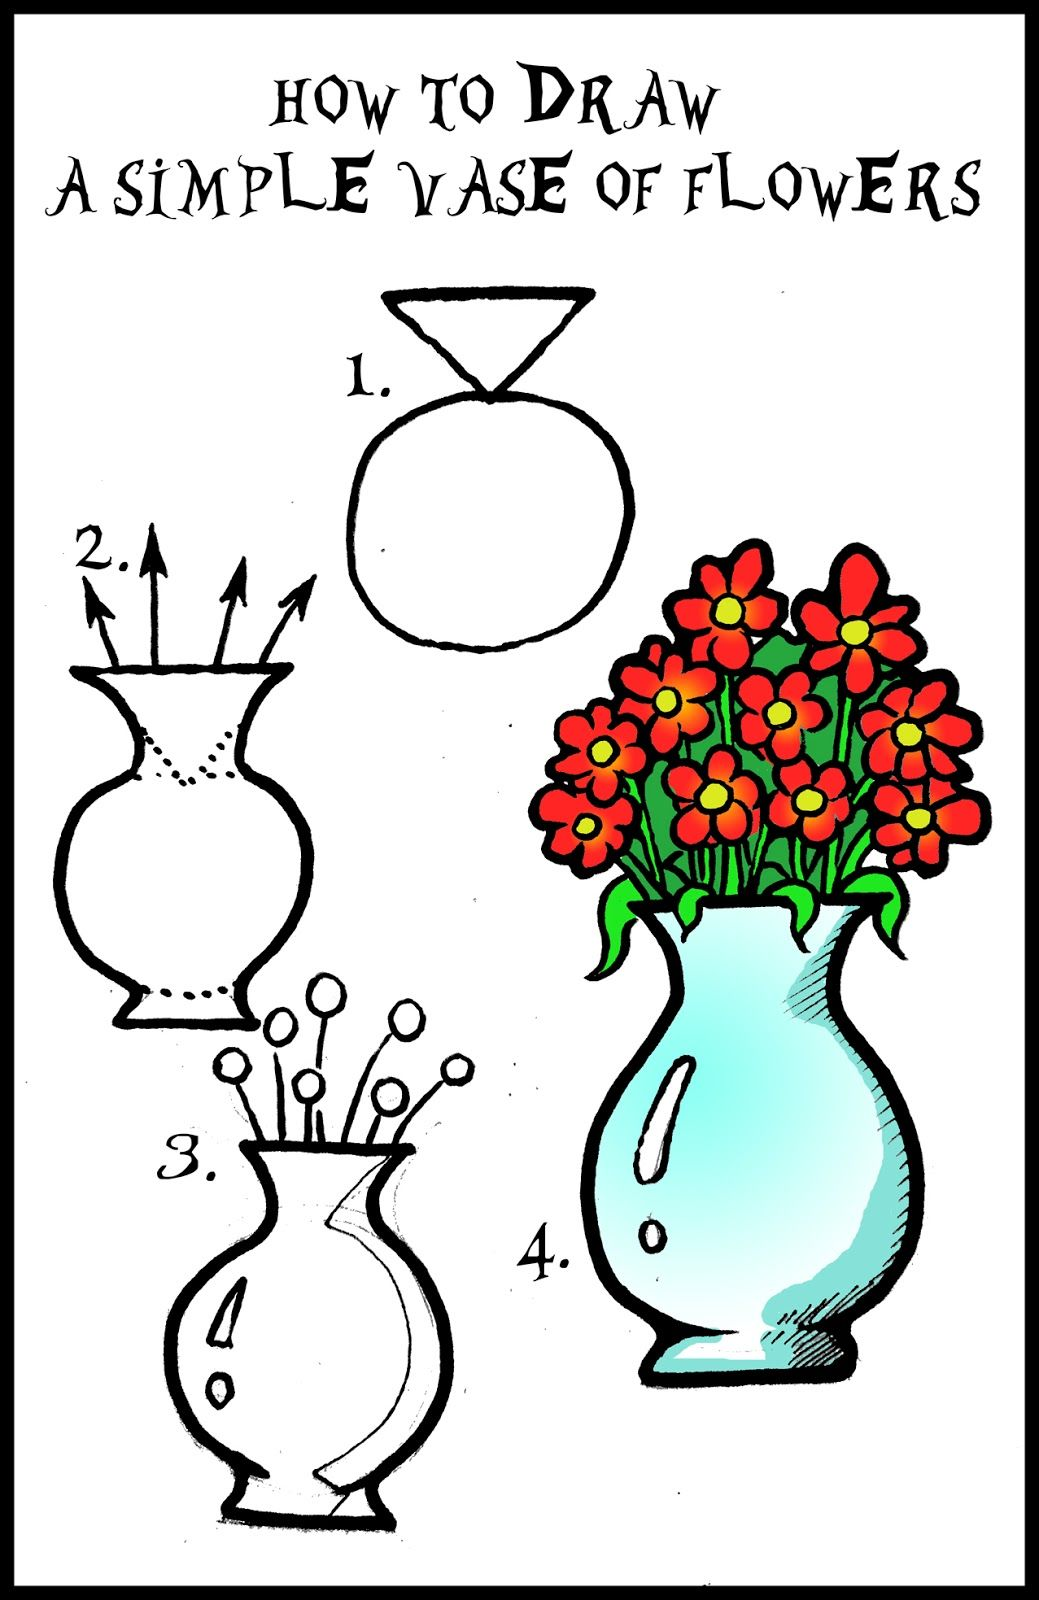 Drawing roses step by step daryl hobson artwork how to draw a drawing roses step by step daryl hobson artwork how to draw a vase of reviewsmspy